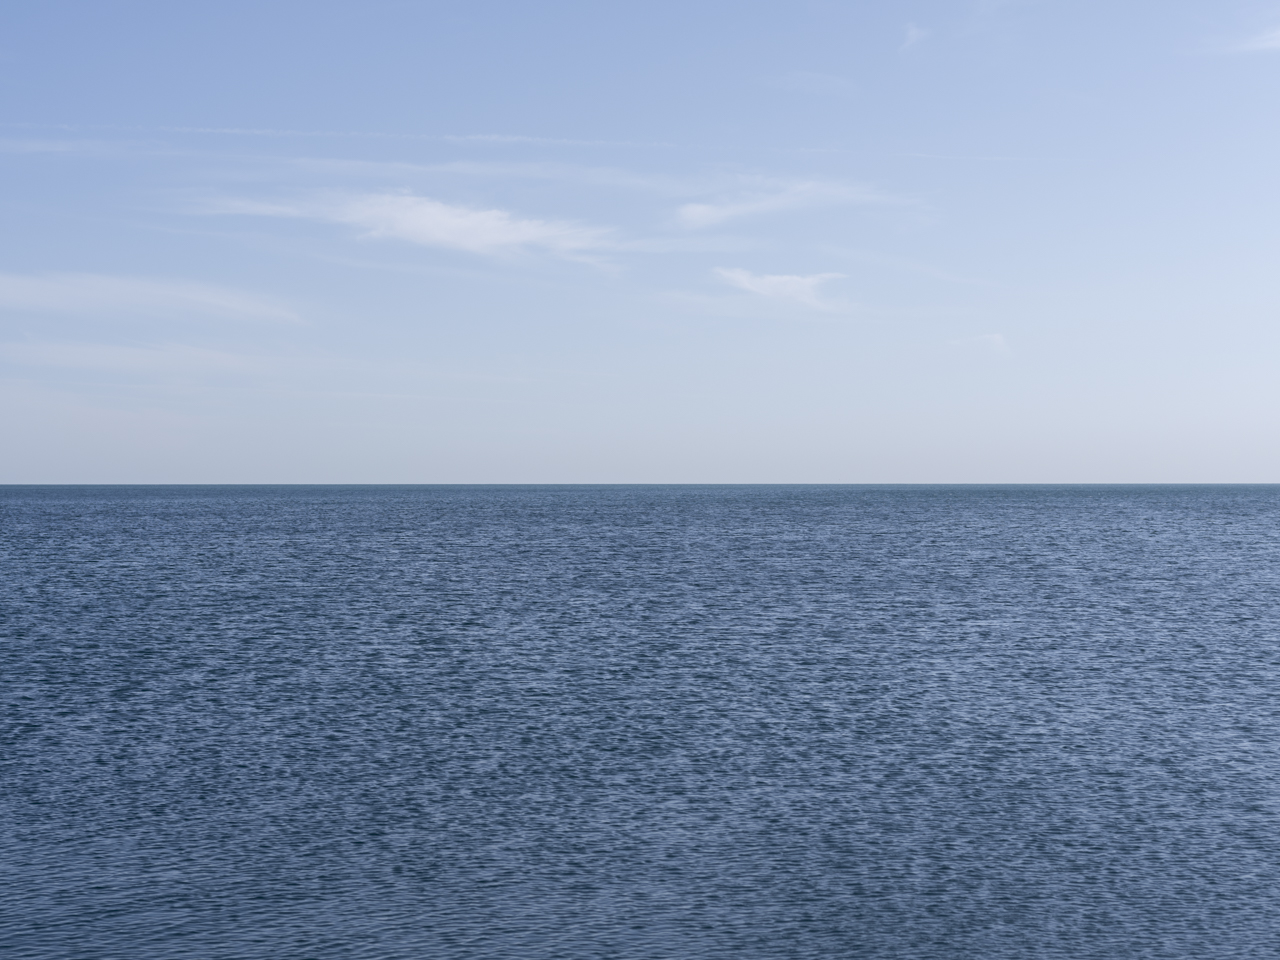 an almost unmoving lake with a few clouds in a light blue sky